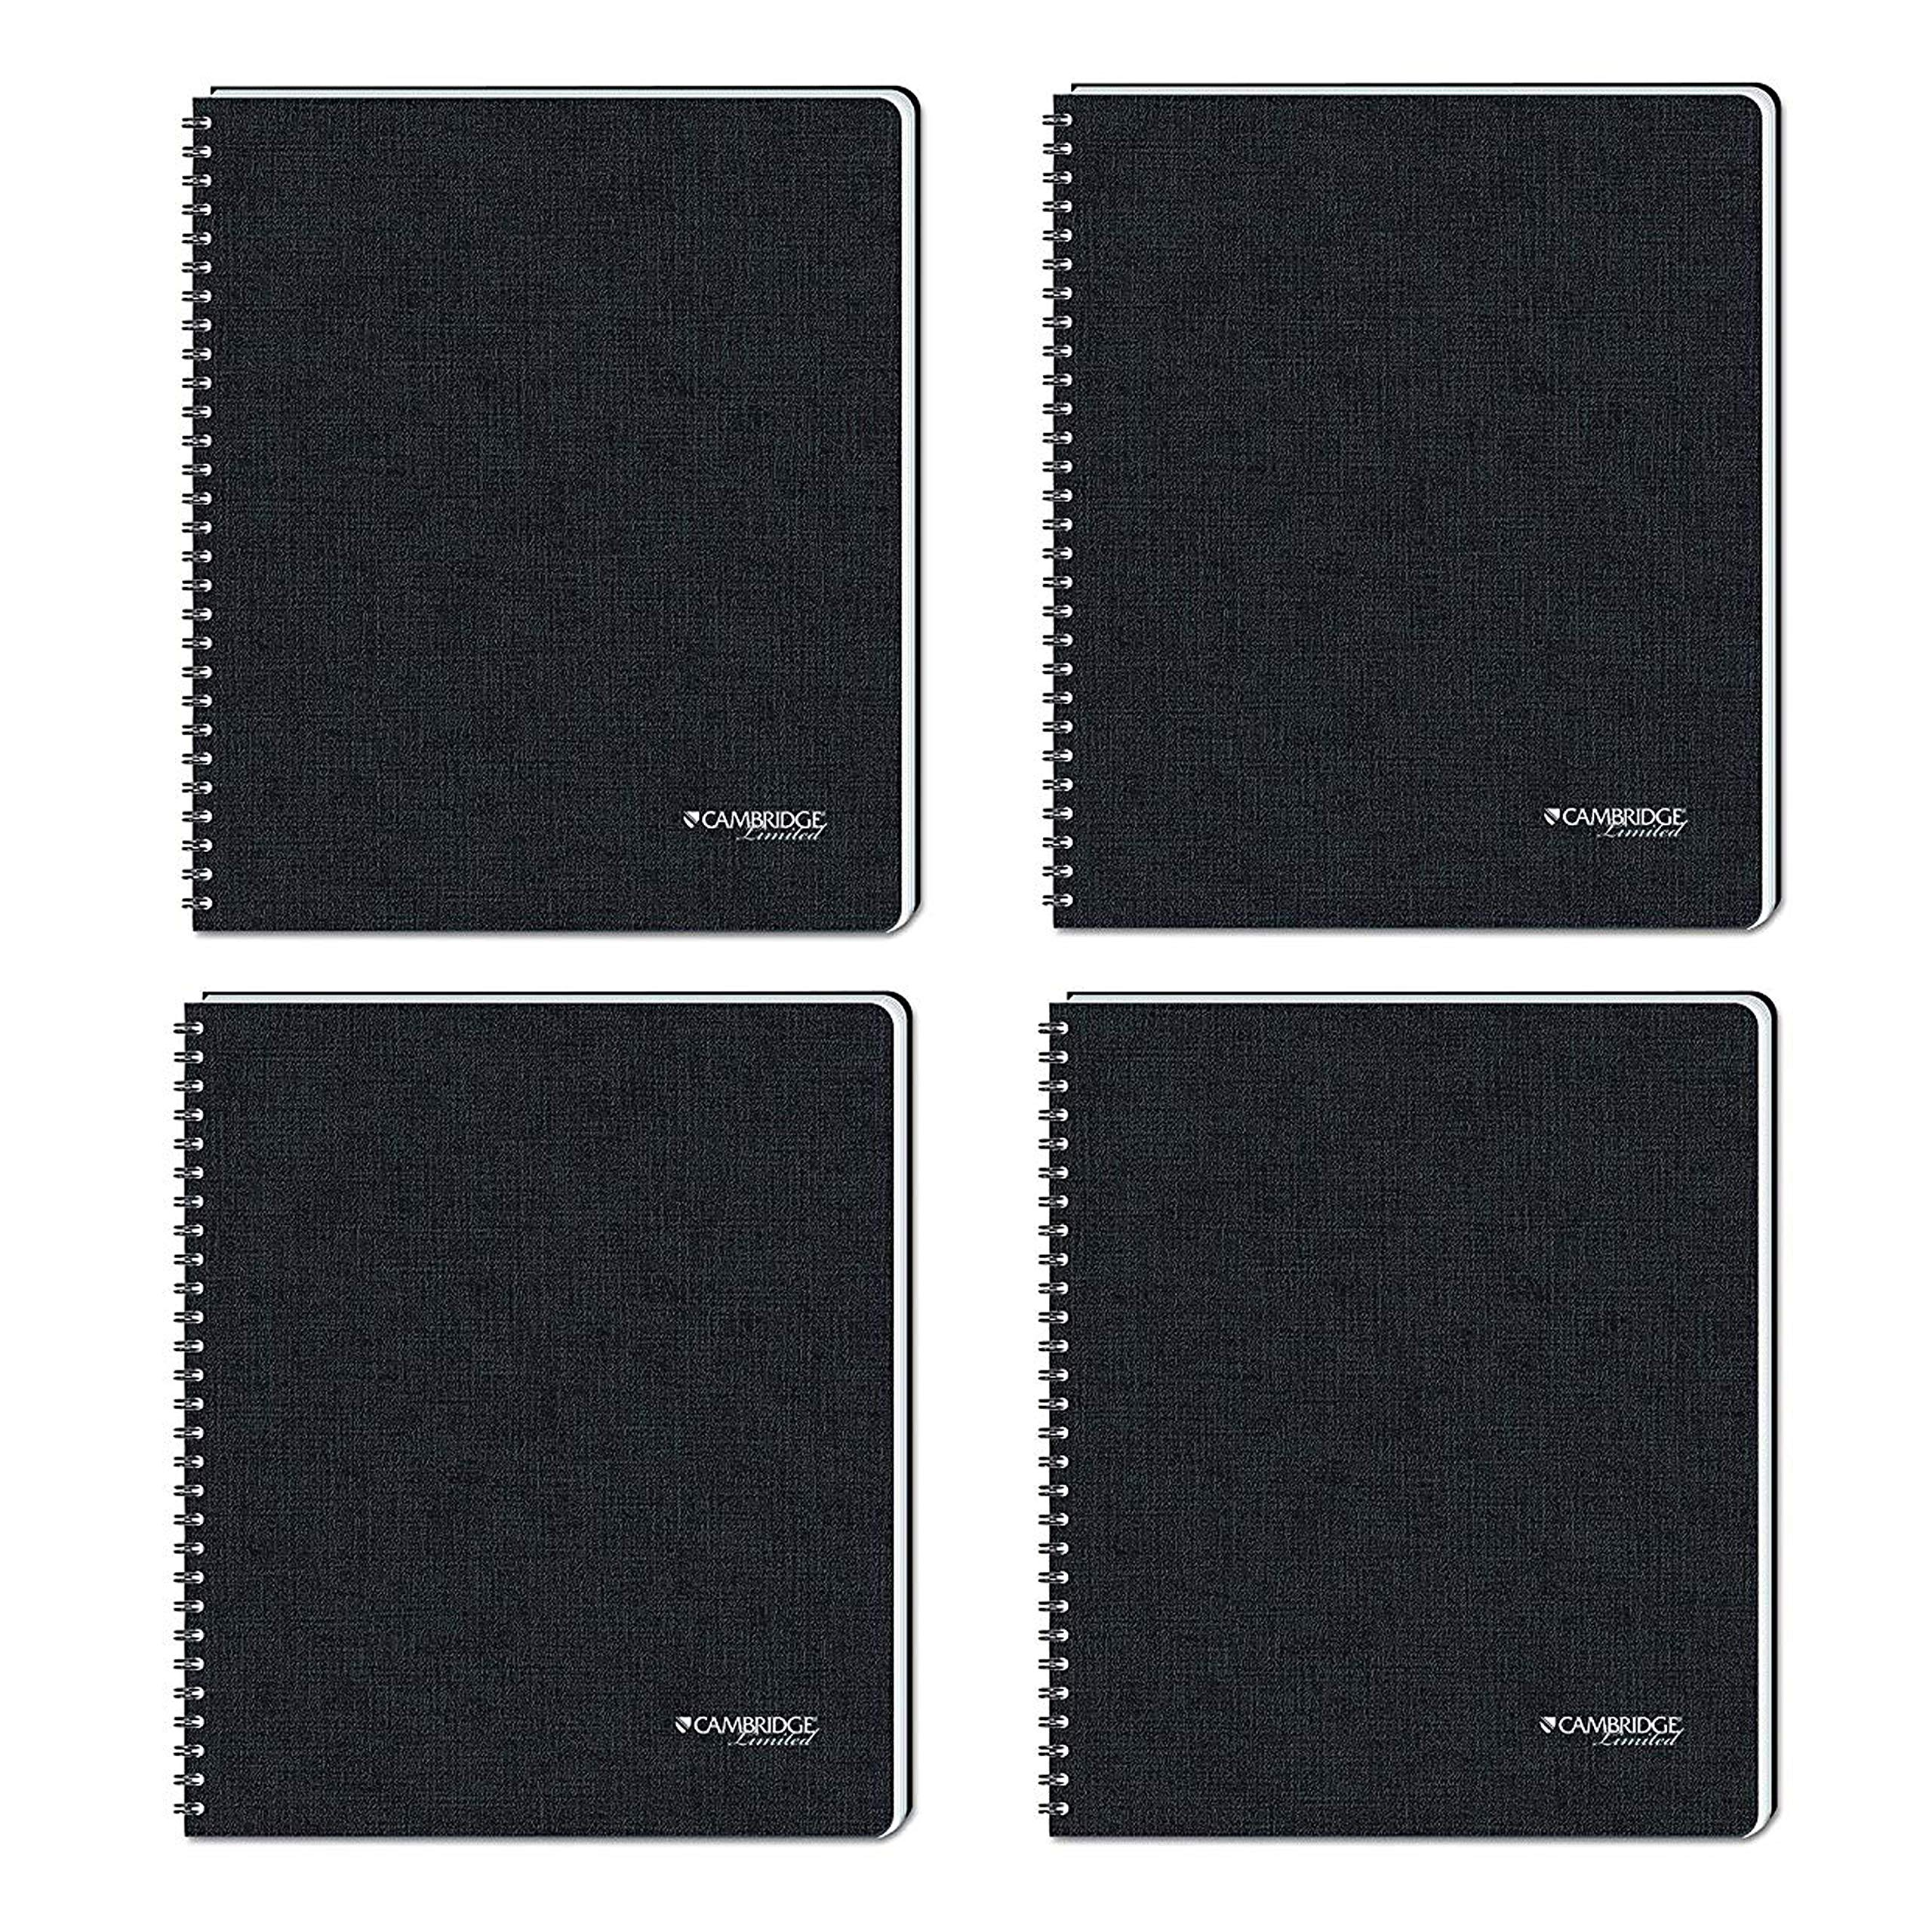 Cambridge Business Notebook with Pocket, Hardbound, 8-1/4 x 11 Inches, Black, Pack of 4 (06100)